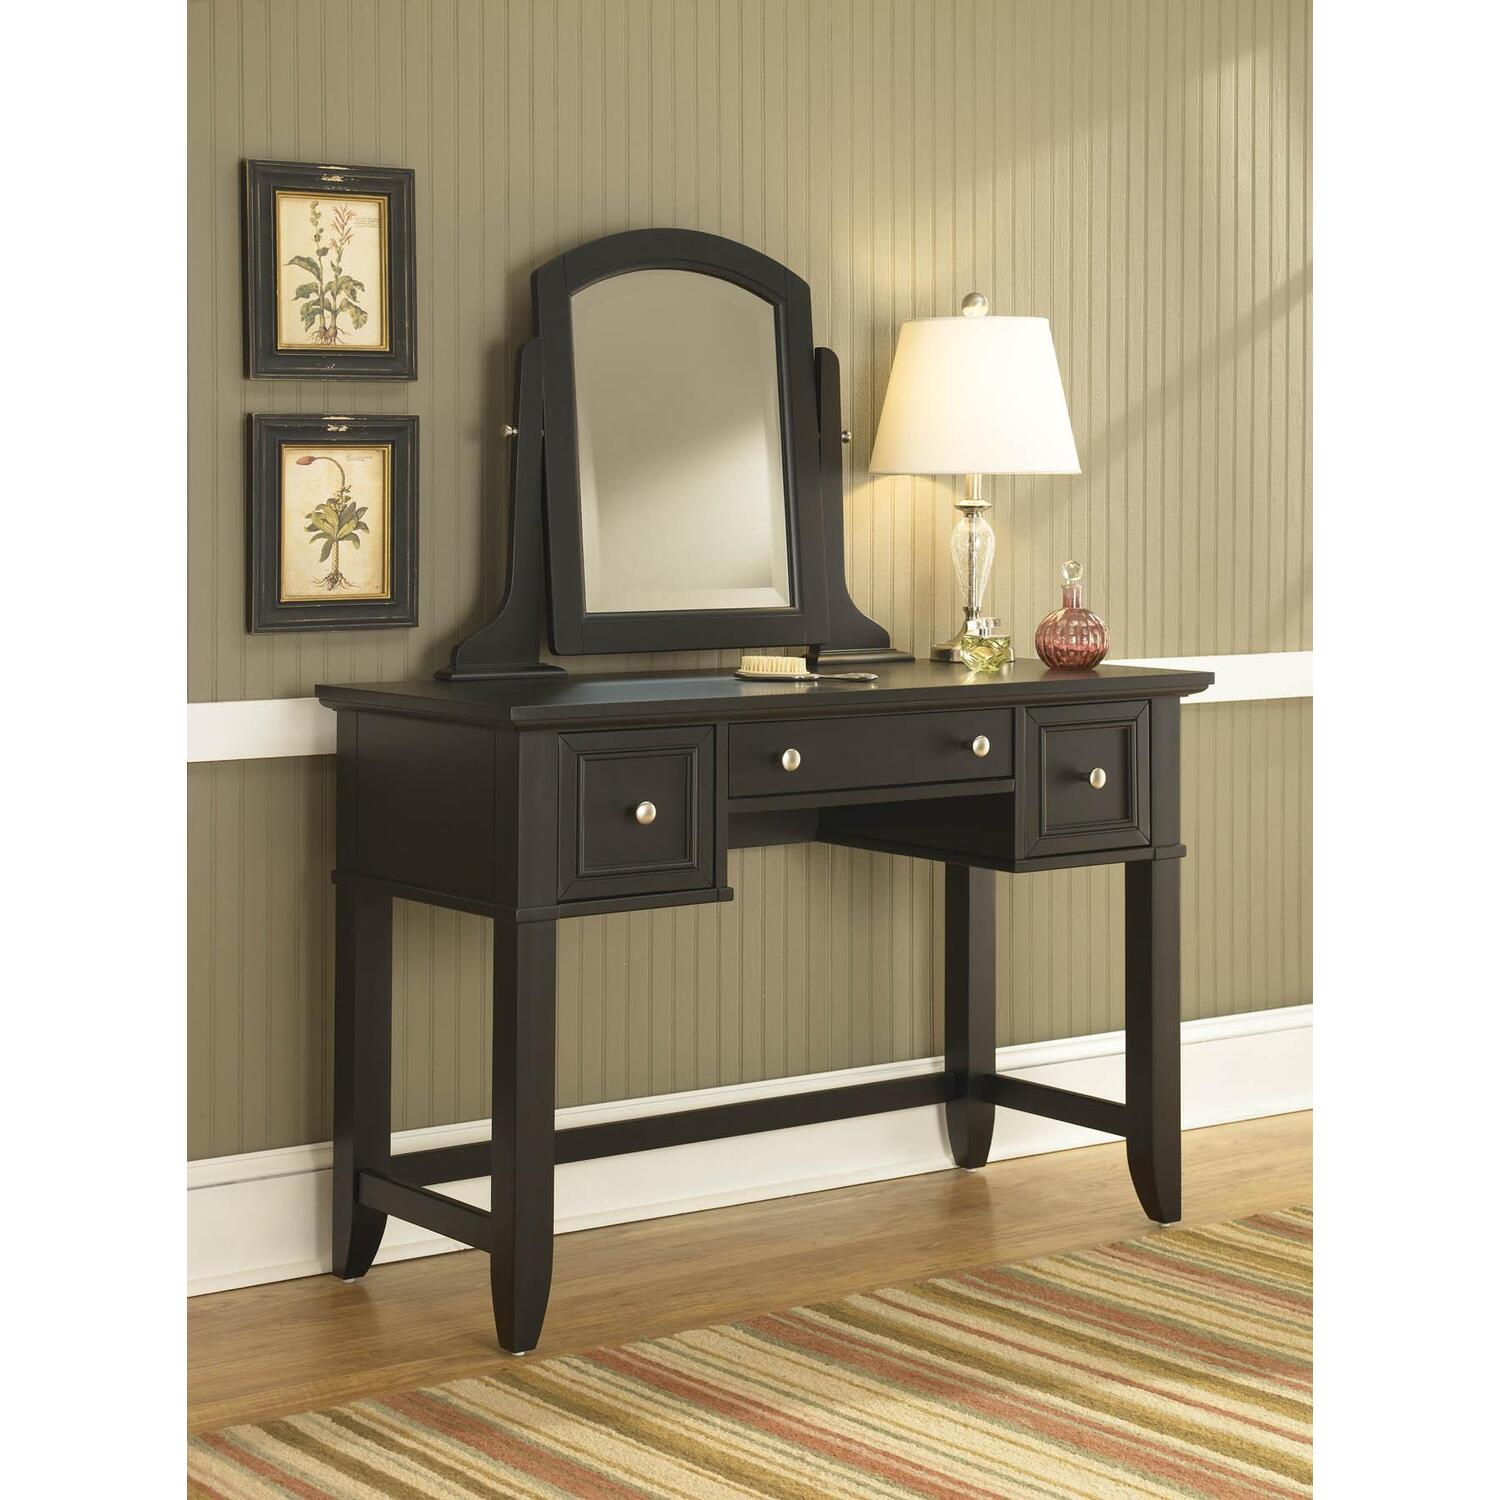 Home Styles 5531 70 Bedford Black Vanity Table